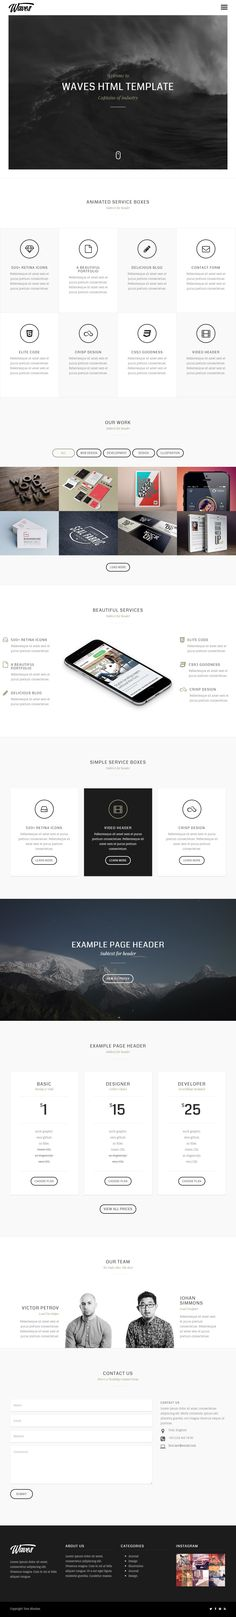 Waves is Premium full Responsive Retina #Multipurpose template. One Page. #VideoBackground. #Isotope. Bootstrap 3 Framework. Test free demo at: http://www.responsivemiracle.com/cms/waves-premium-responsive-fullscreen-video-html5-template/